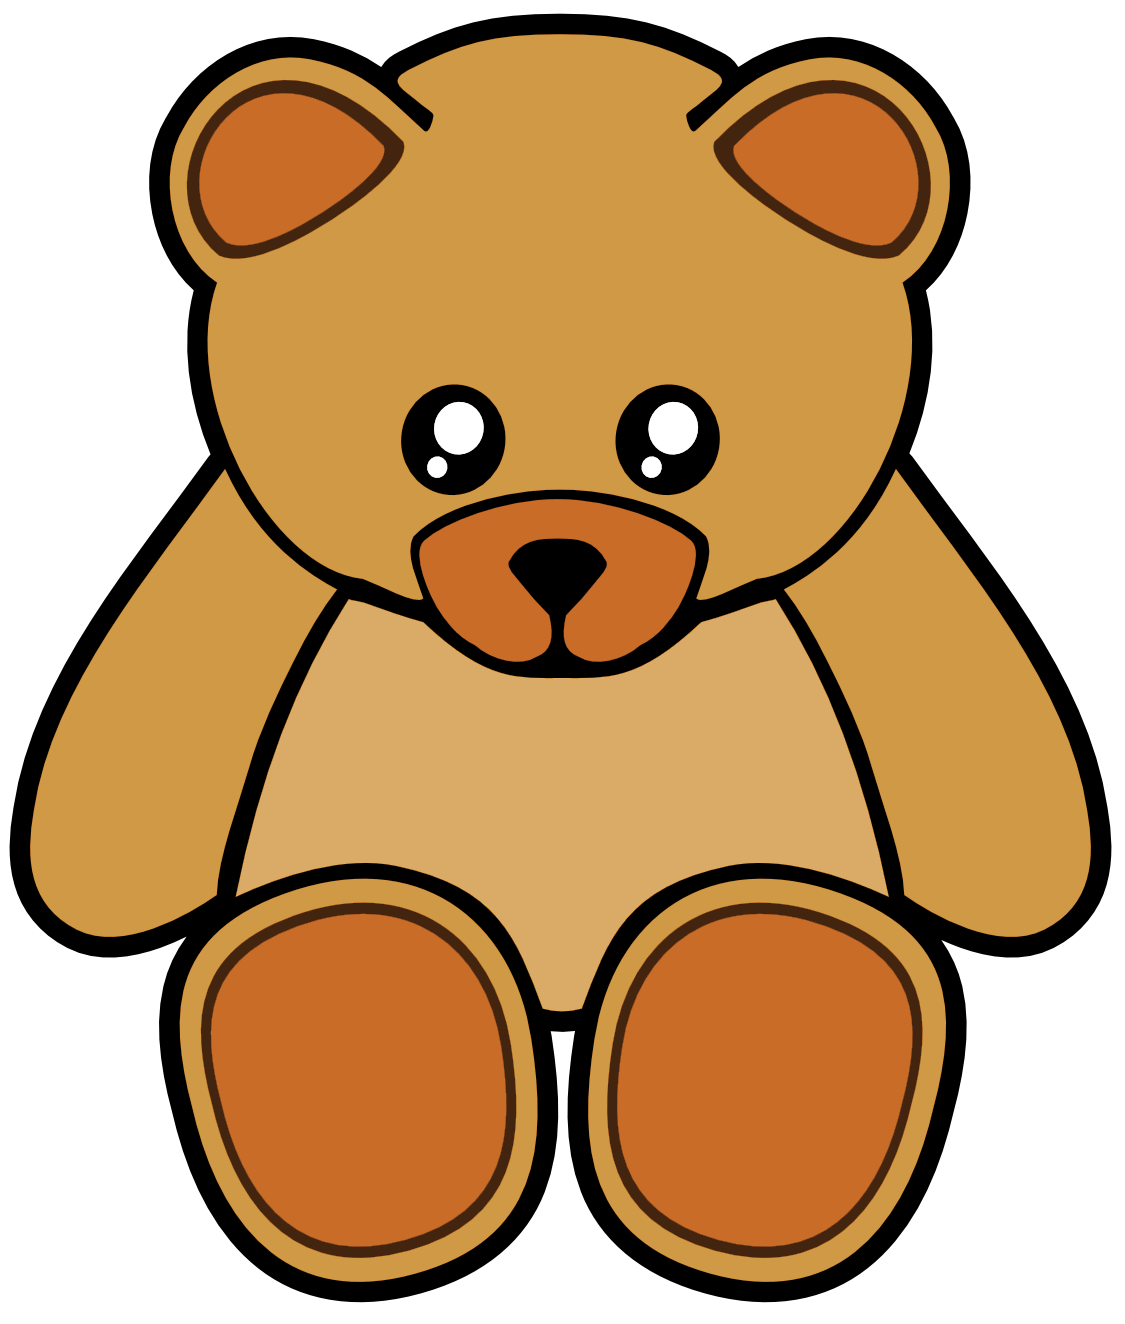 1125x1324 Cartoon Teddy Bear Clipart